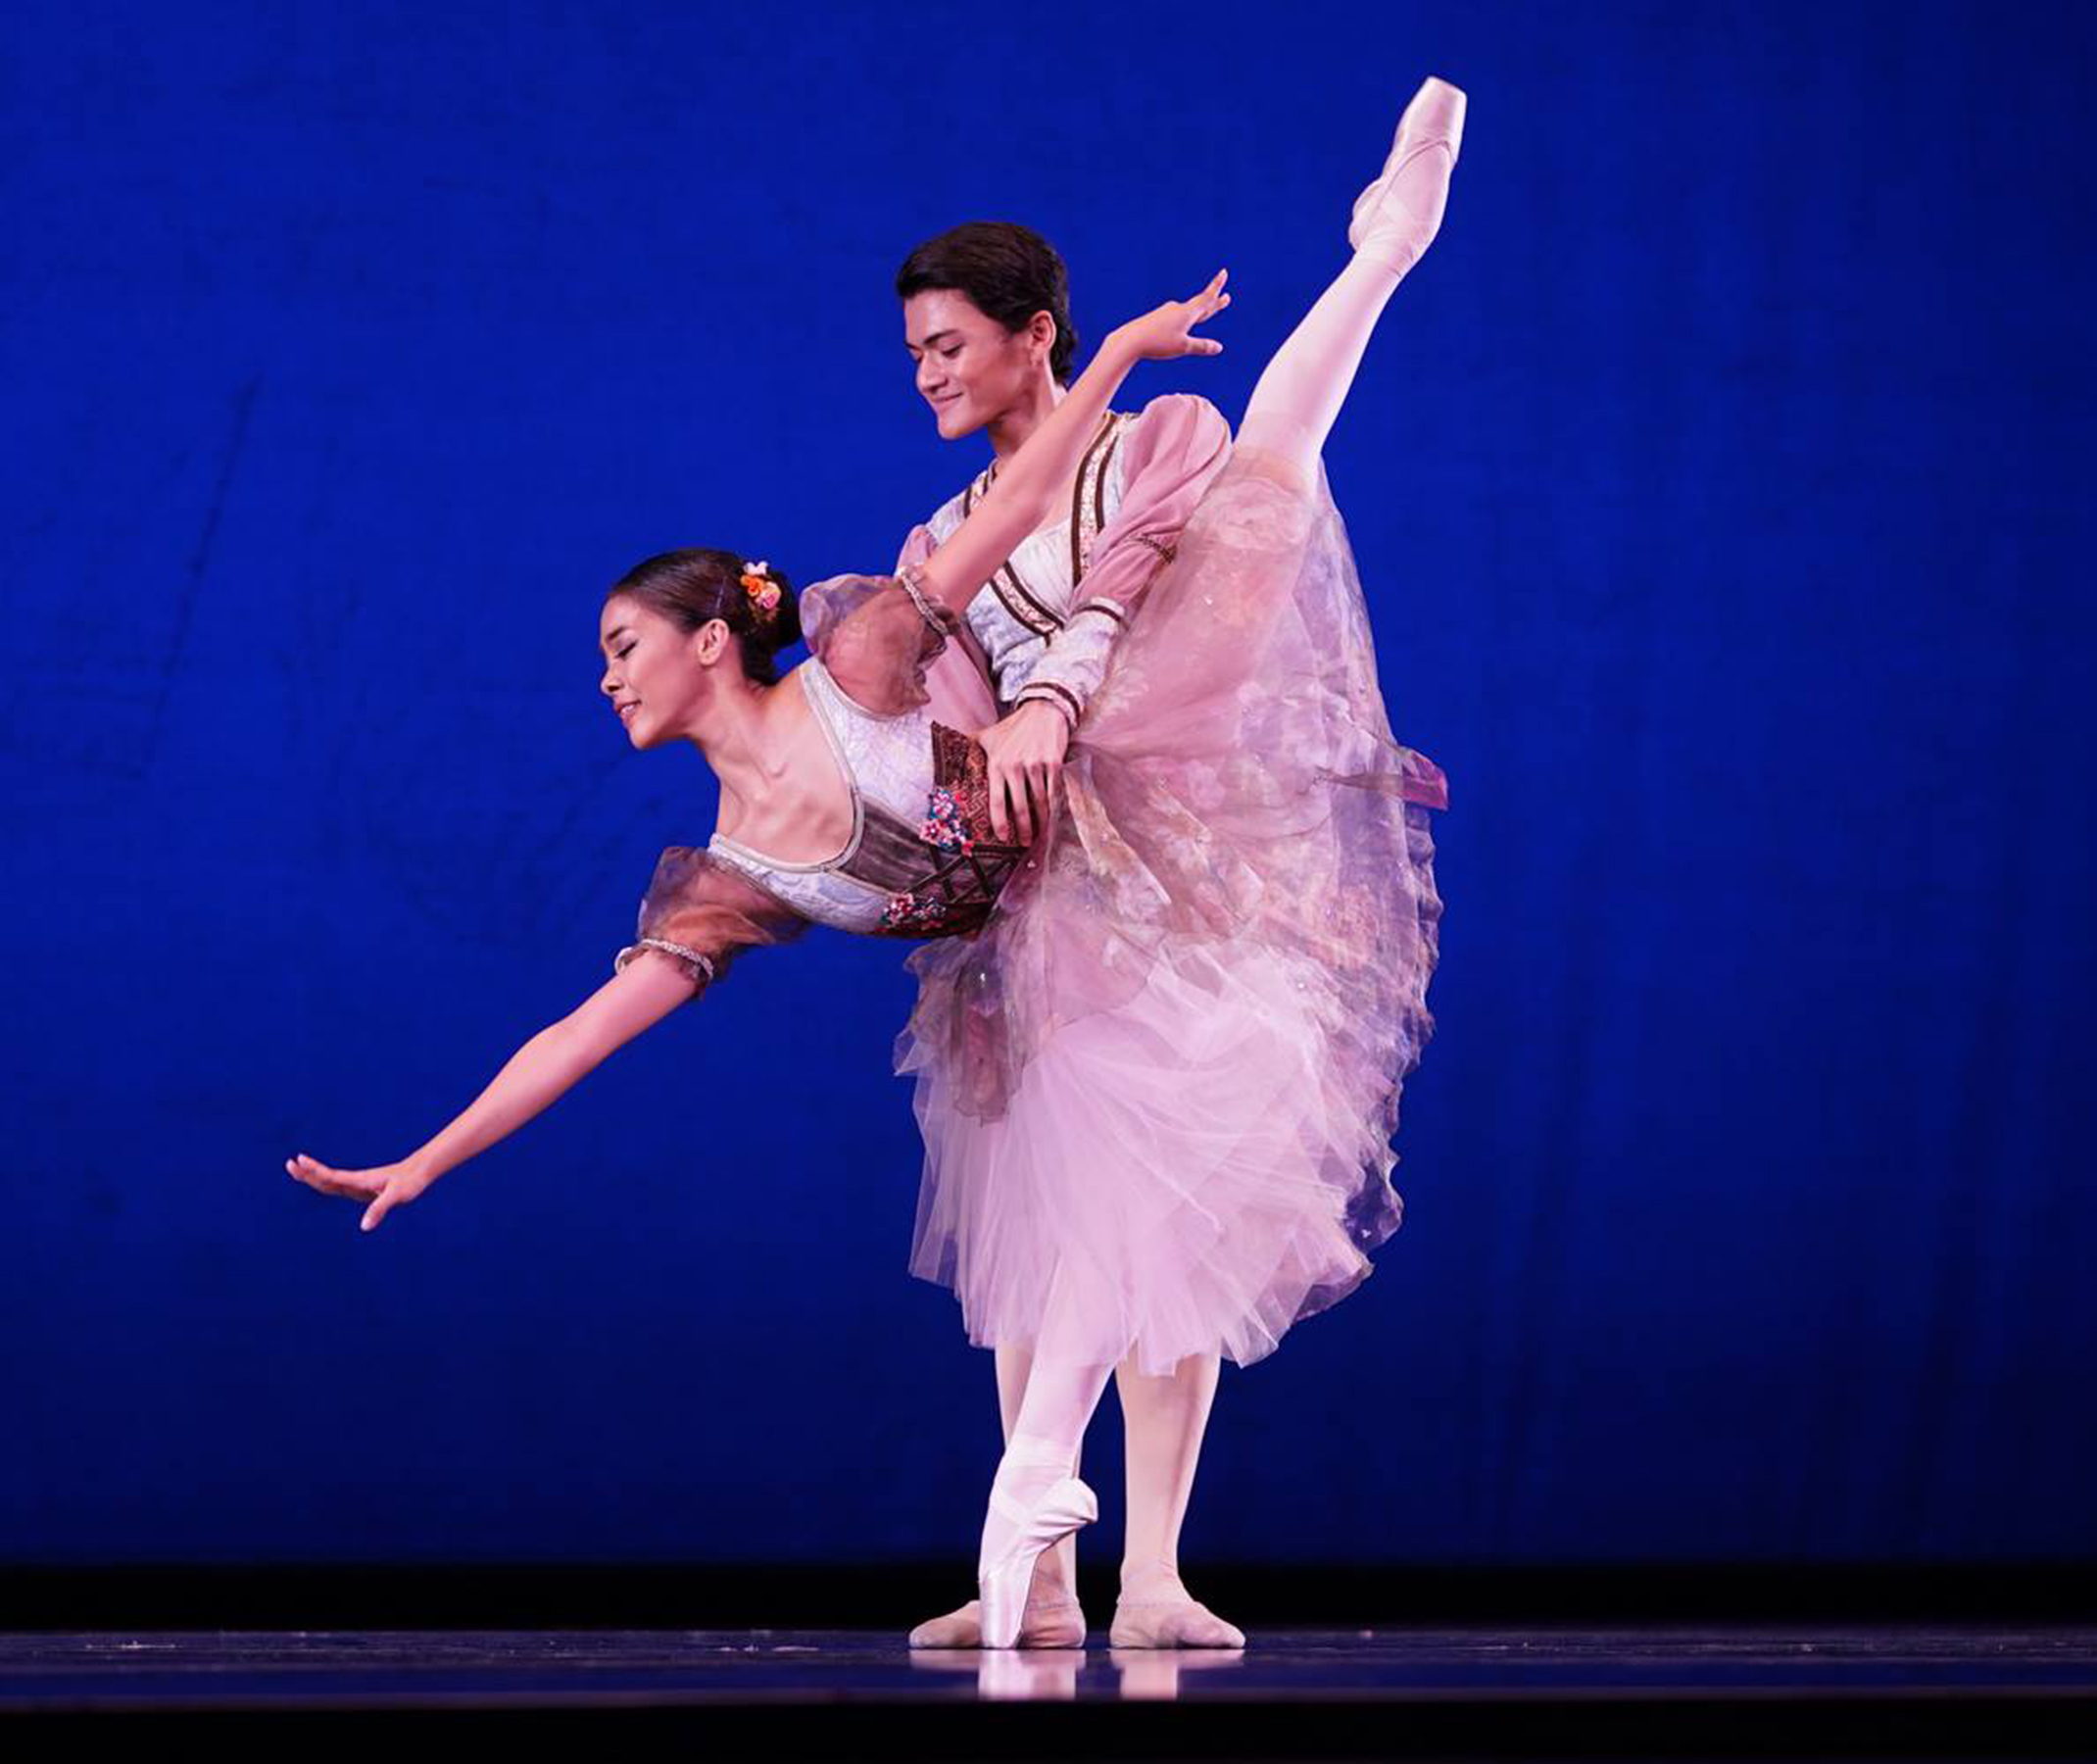 Nicole and Joshua (in    Peasant Pas de Deux   ) worked well as a team, says Osias Barroso. Photo by Richard Finkelstein/ USA IBC